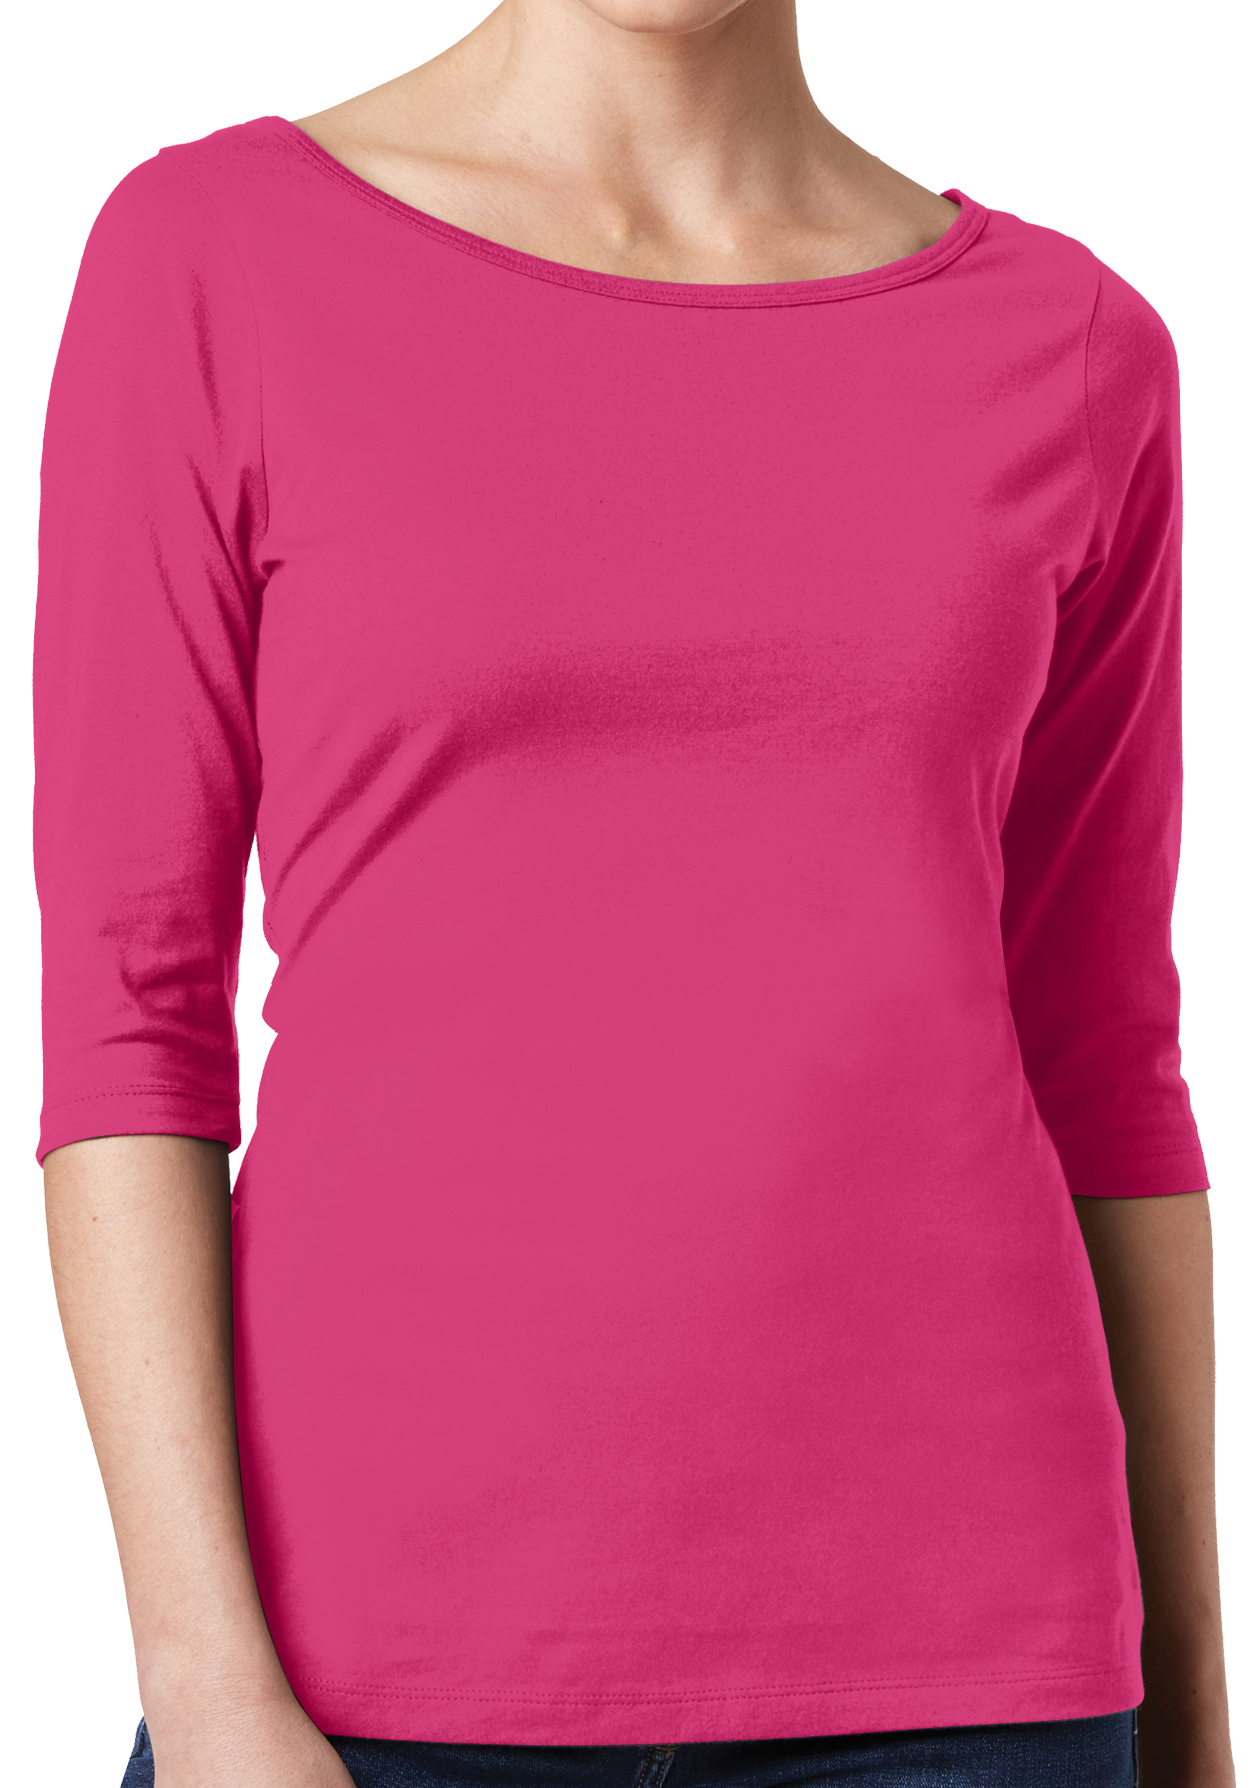 New Fruit of the Loom Womens Small Thermal Shirt Top Black Sm 4-6